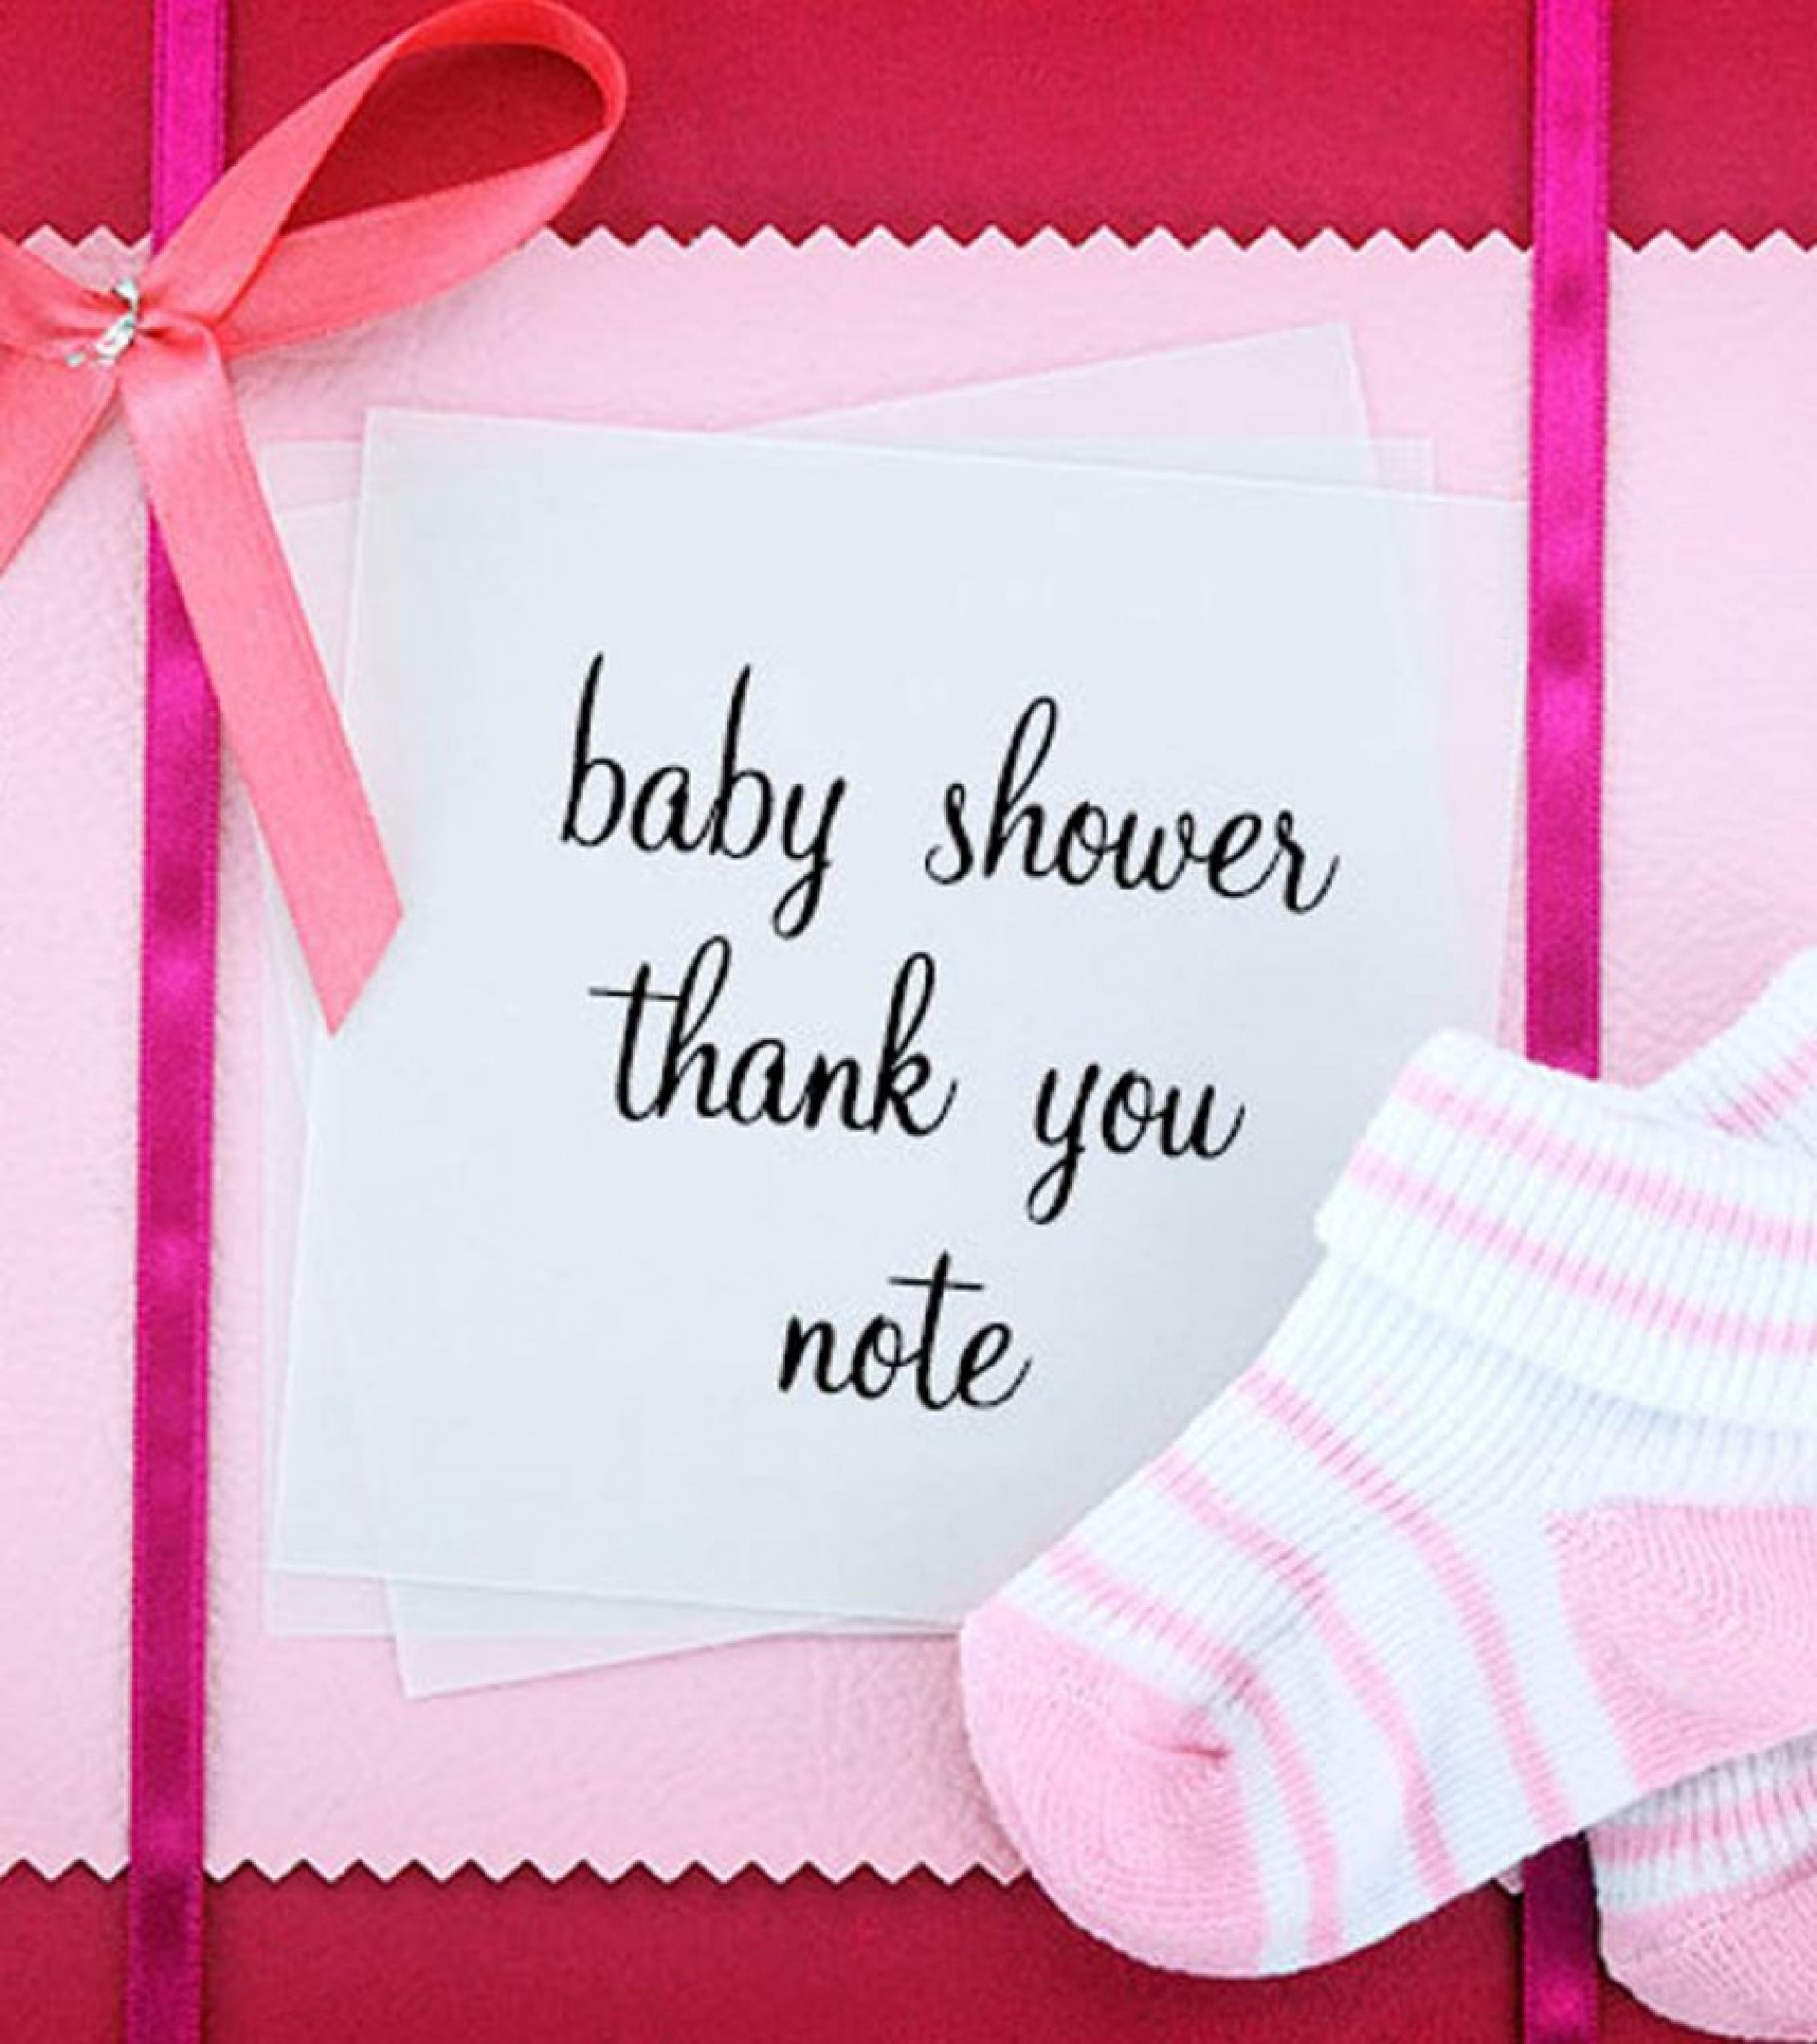 005 Unbelievable Thank You Card Wording For Baby Shower Group Gift Sample 1920